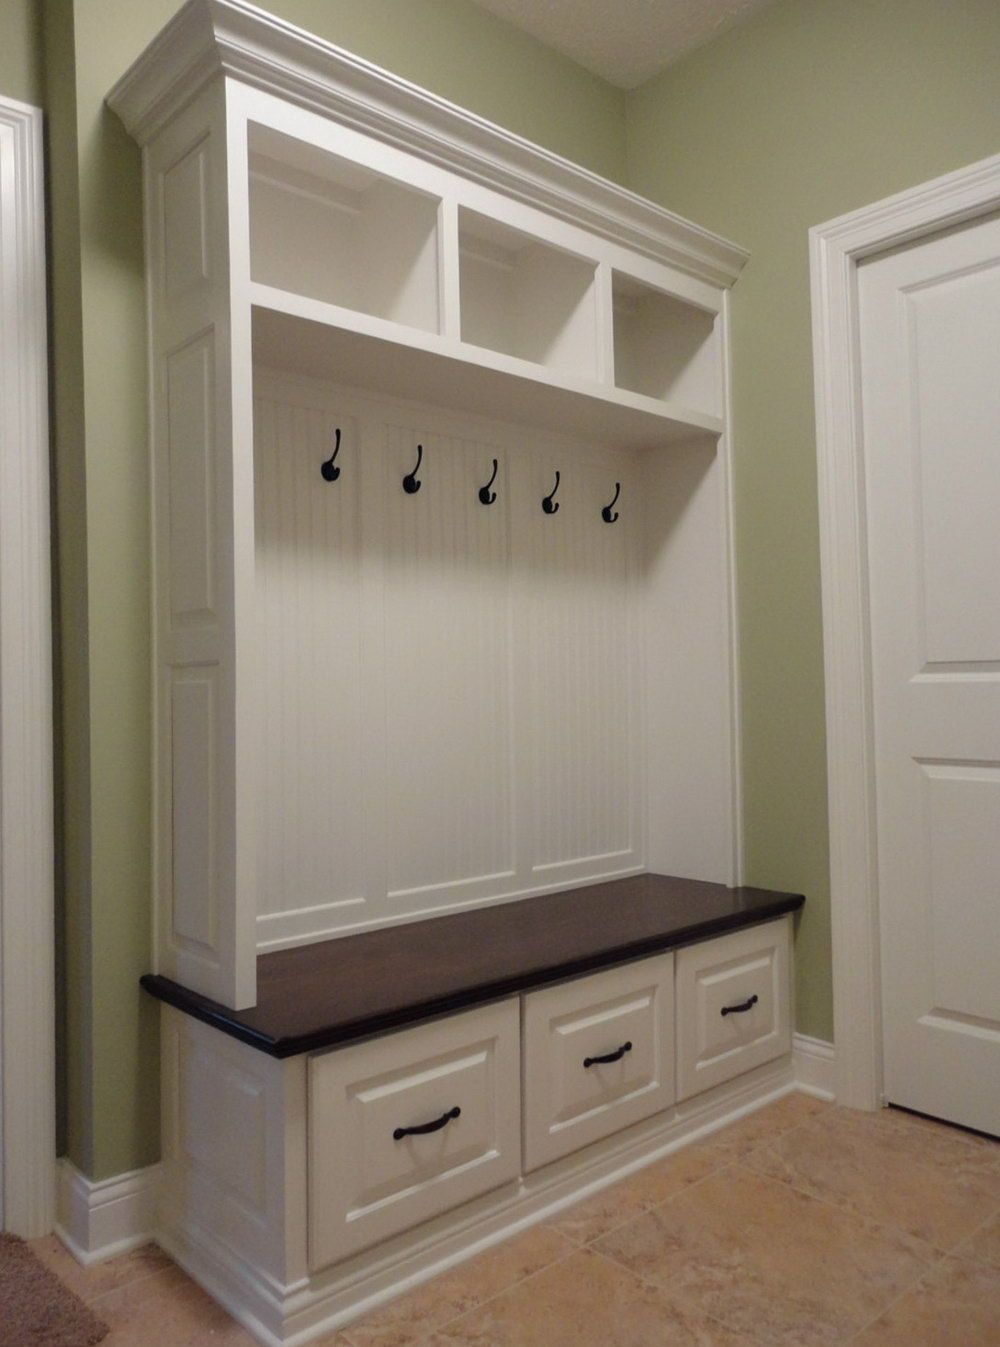 Laundry Room Bench And Hooks Mudroom Storage Bench Mud Room Storage Mudroom Furniture